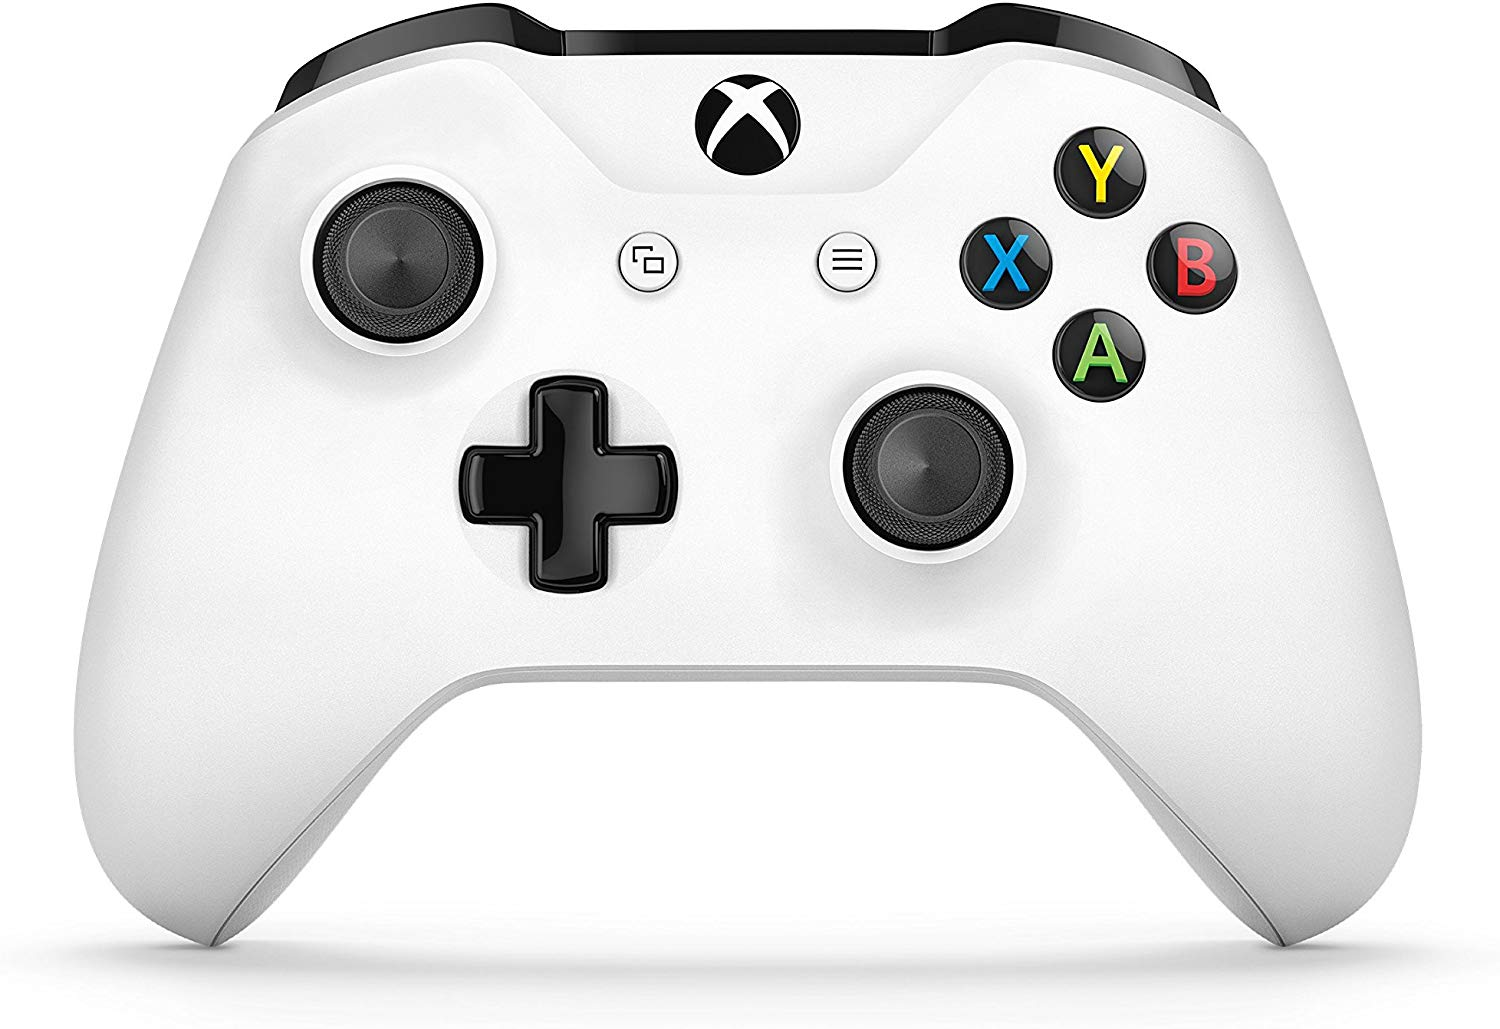 Mando Xbox One en blanco